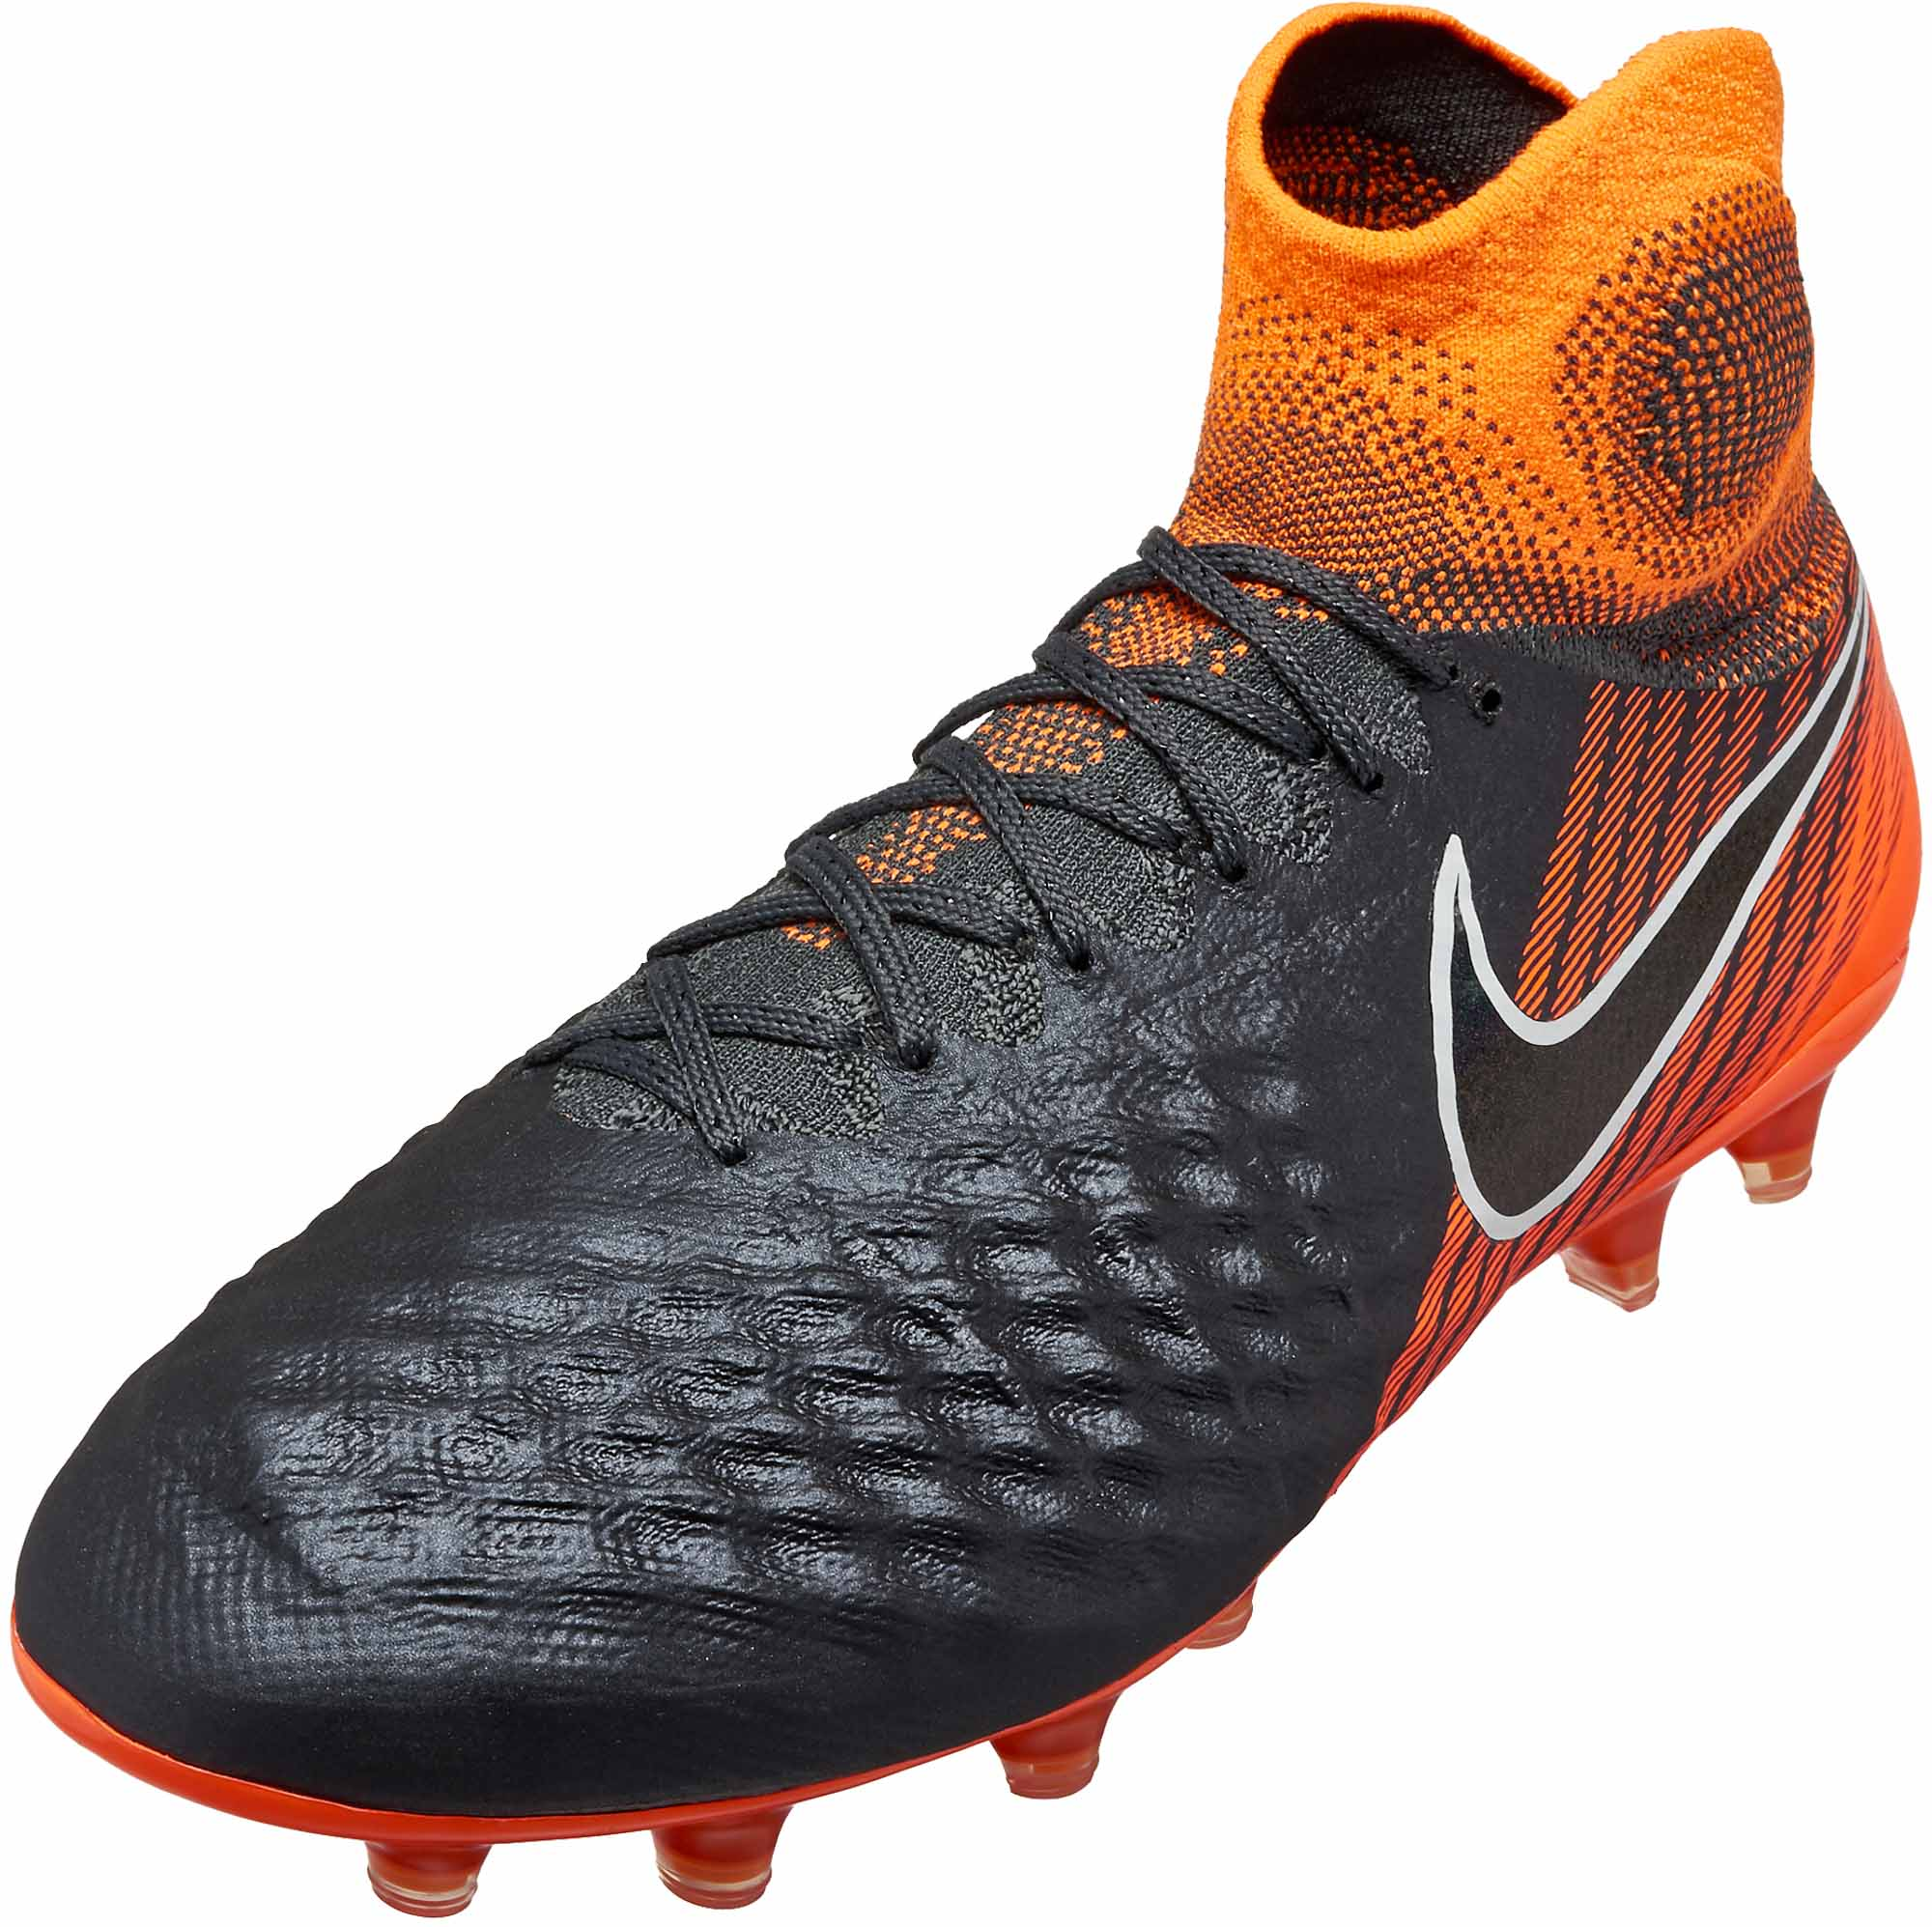 Nike Magista Obra 2 Elite DF FG – Dark GreyTotal Orange